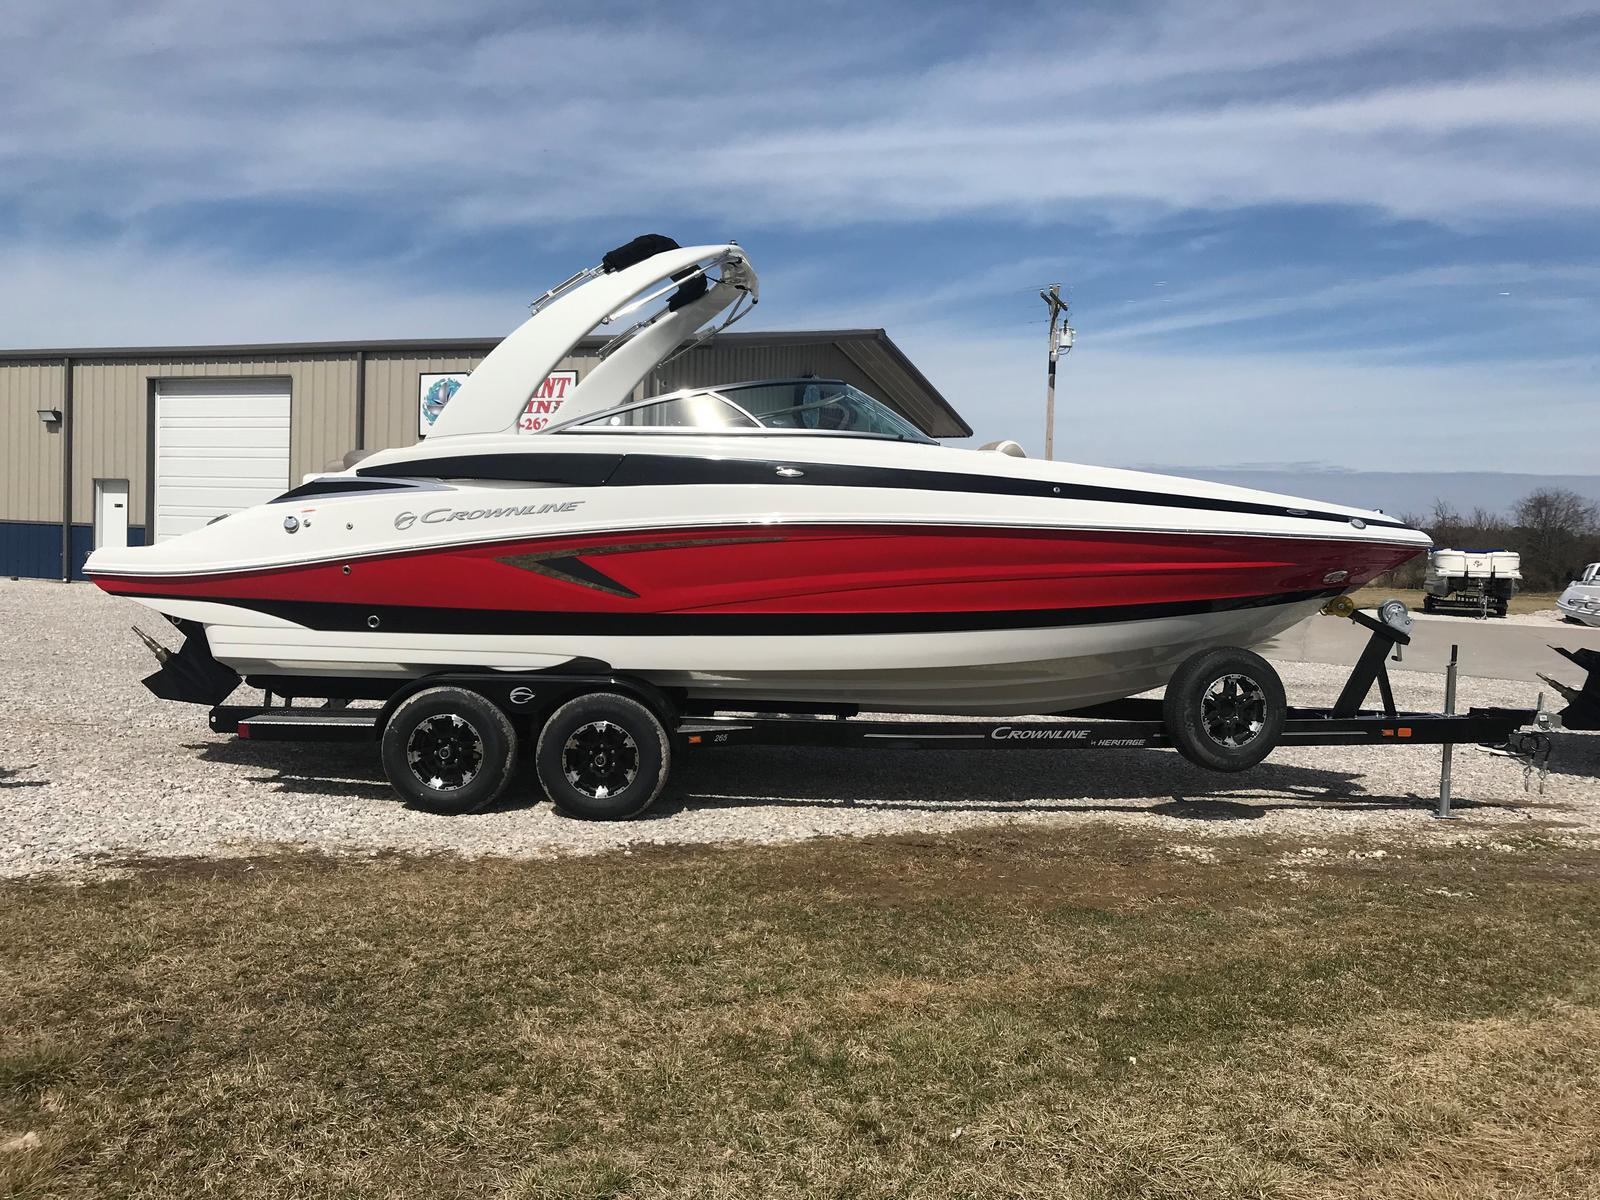 2019 Crownline 265 SS for sale in Rogers, AR  Waypoint